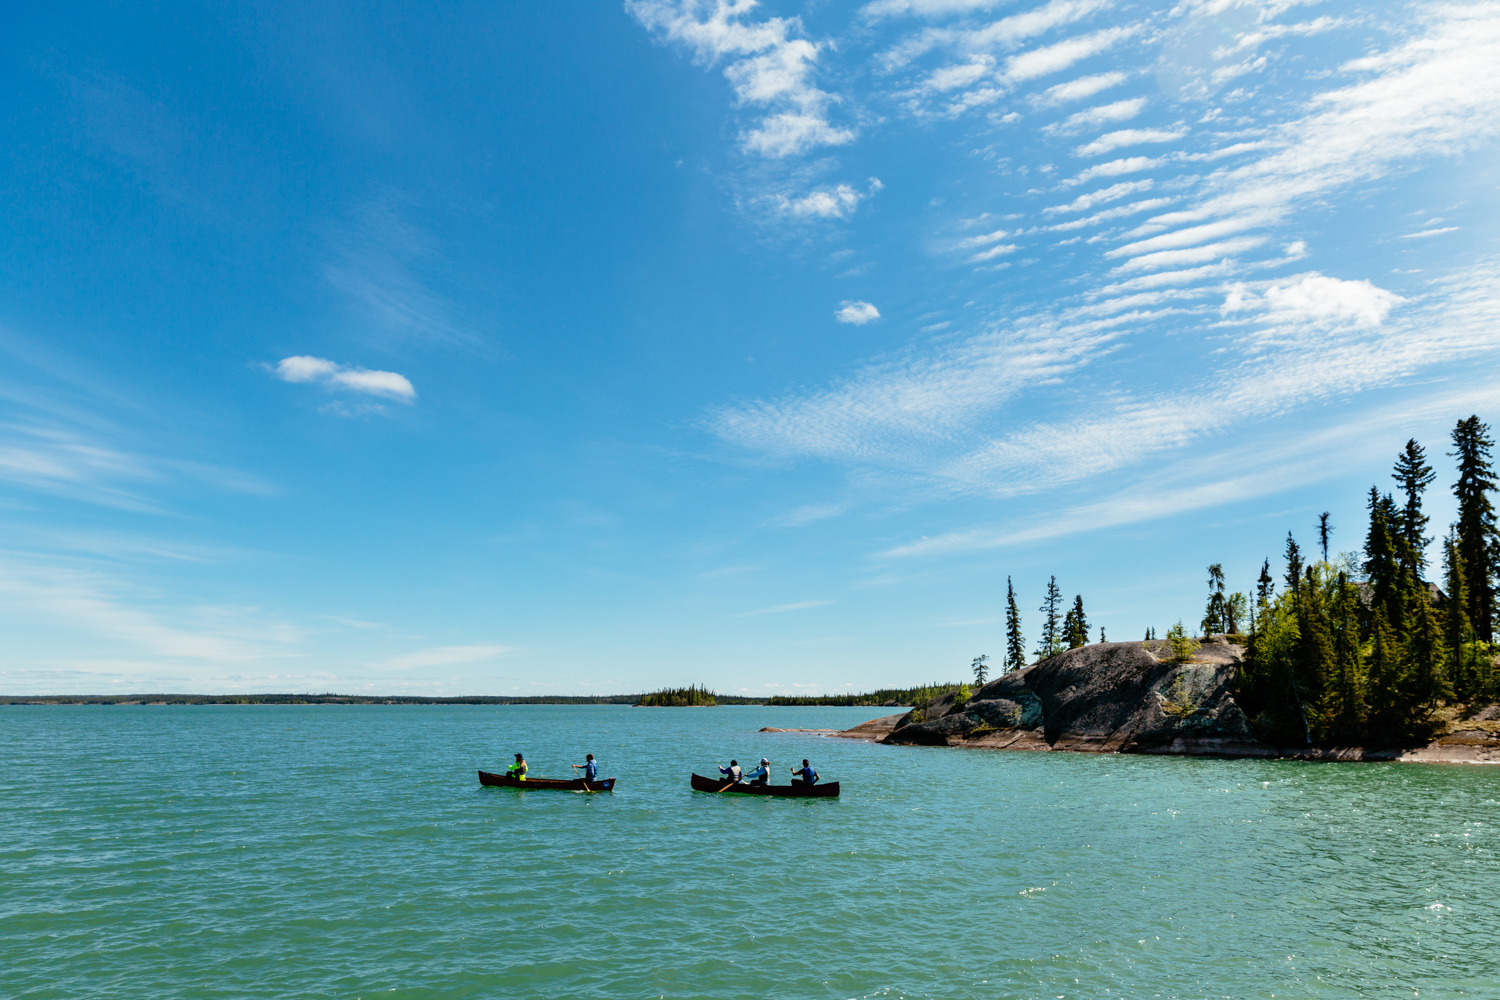 Ryan-Pyle-Productions-and-Destination-Canada-Summer-17-Canoeing.jpg